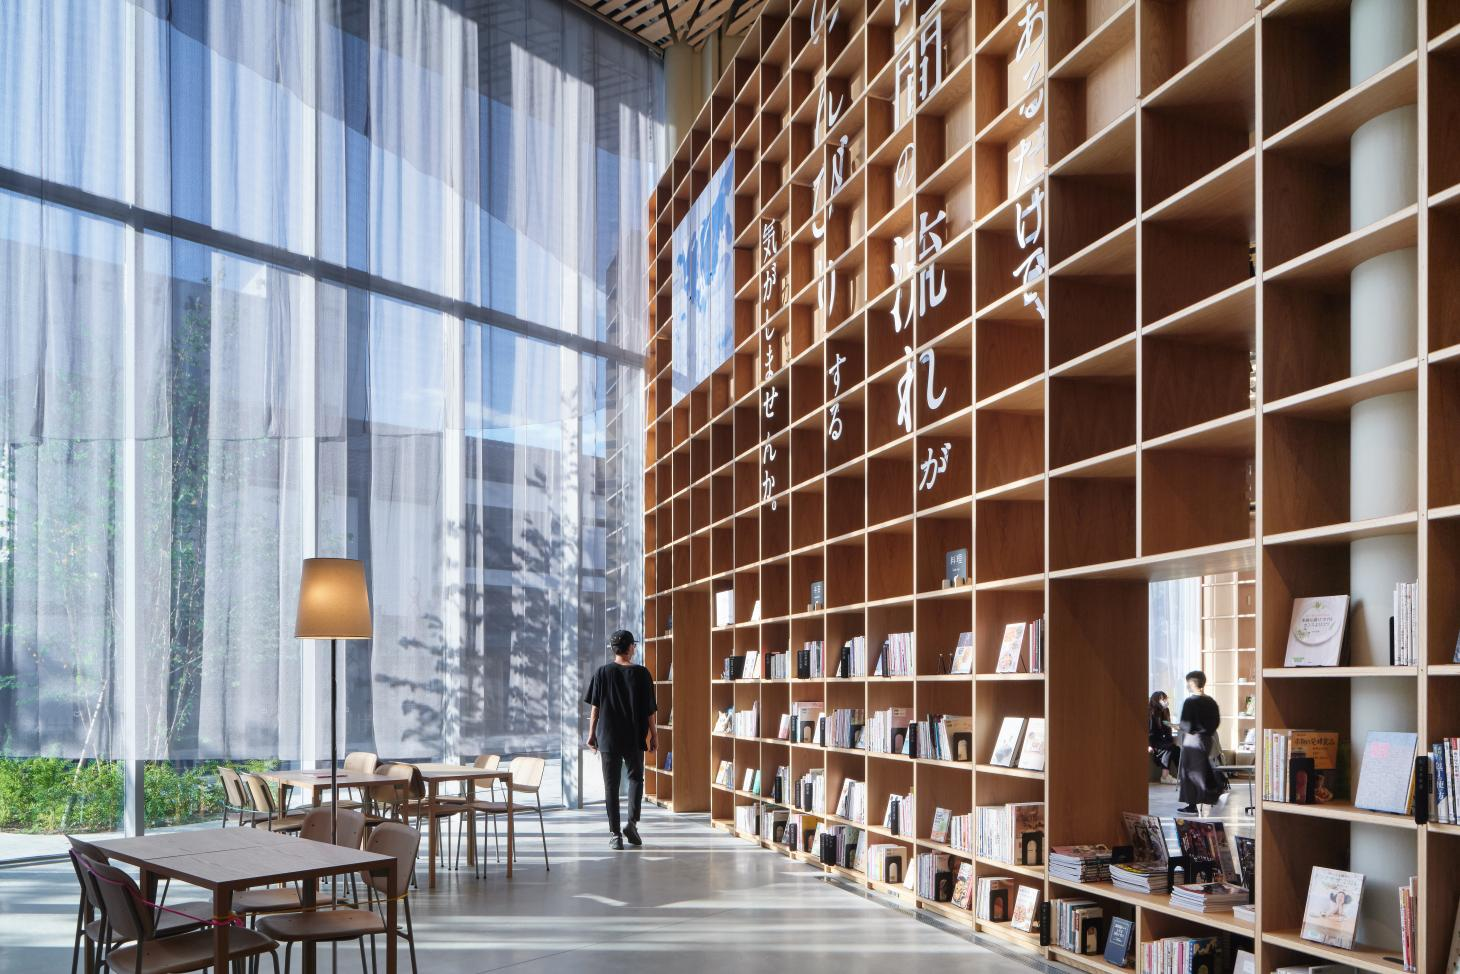 Japanese library interior featuring wooden furniture